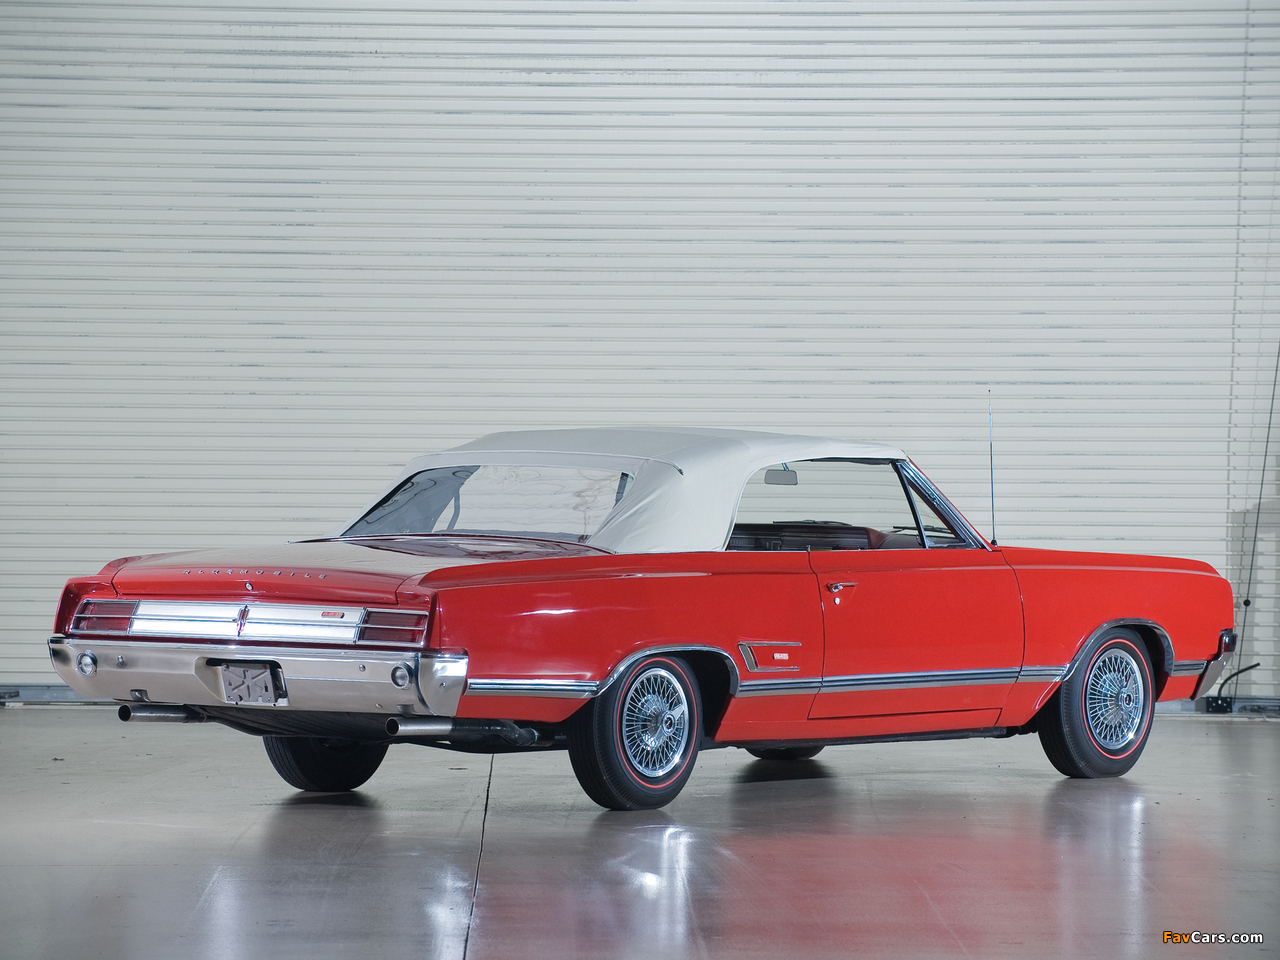 Oldsmobile Cutlass 442 Convertible 1965 images (1280 x 960)